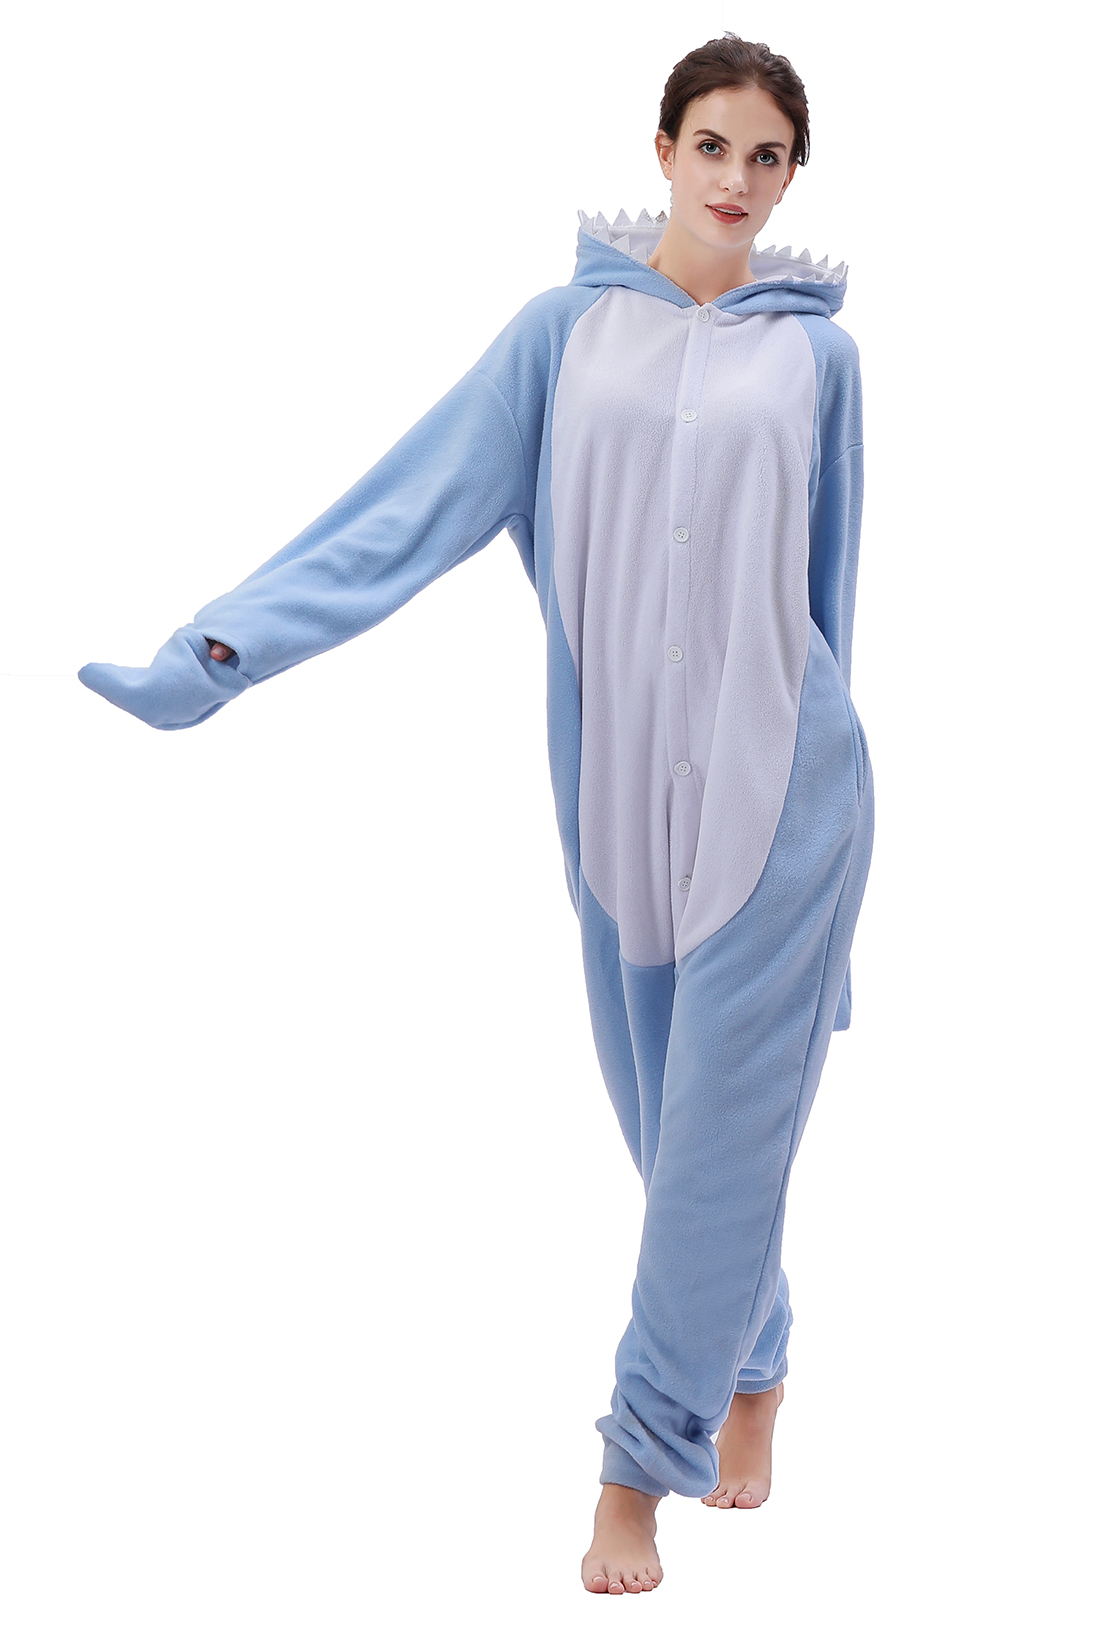 New Animal Kgurumi Onesie Pajamas Blue Shark Cartoon Onesie Sleepwear Adult Cosplay Costumes For Adult And Teenagers